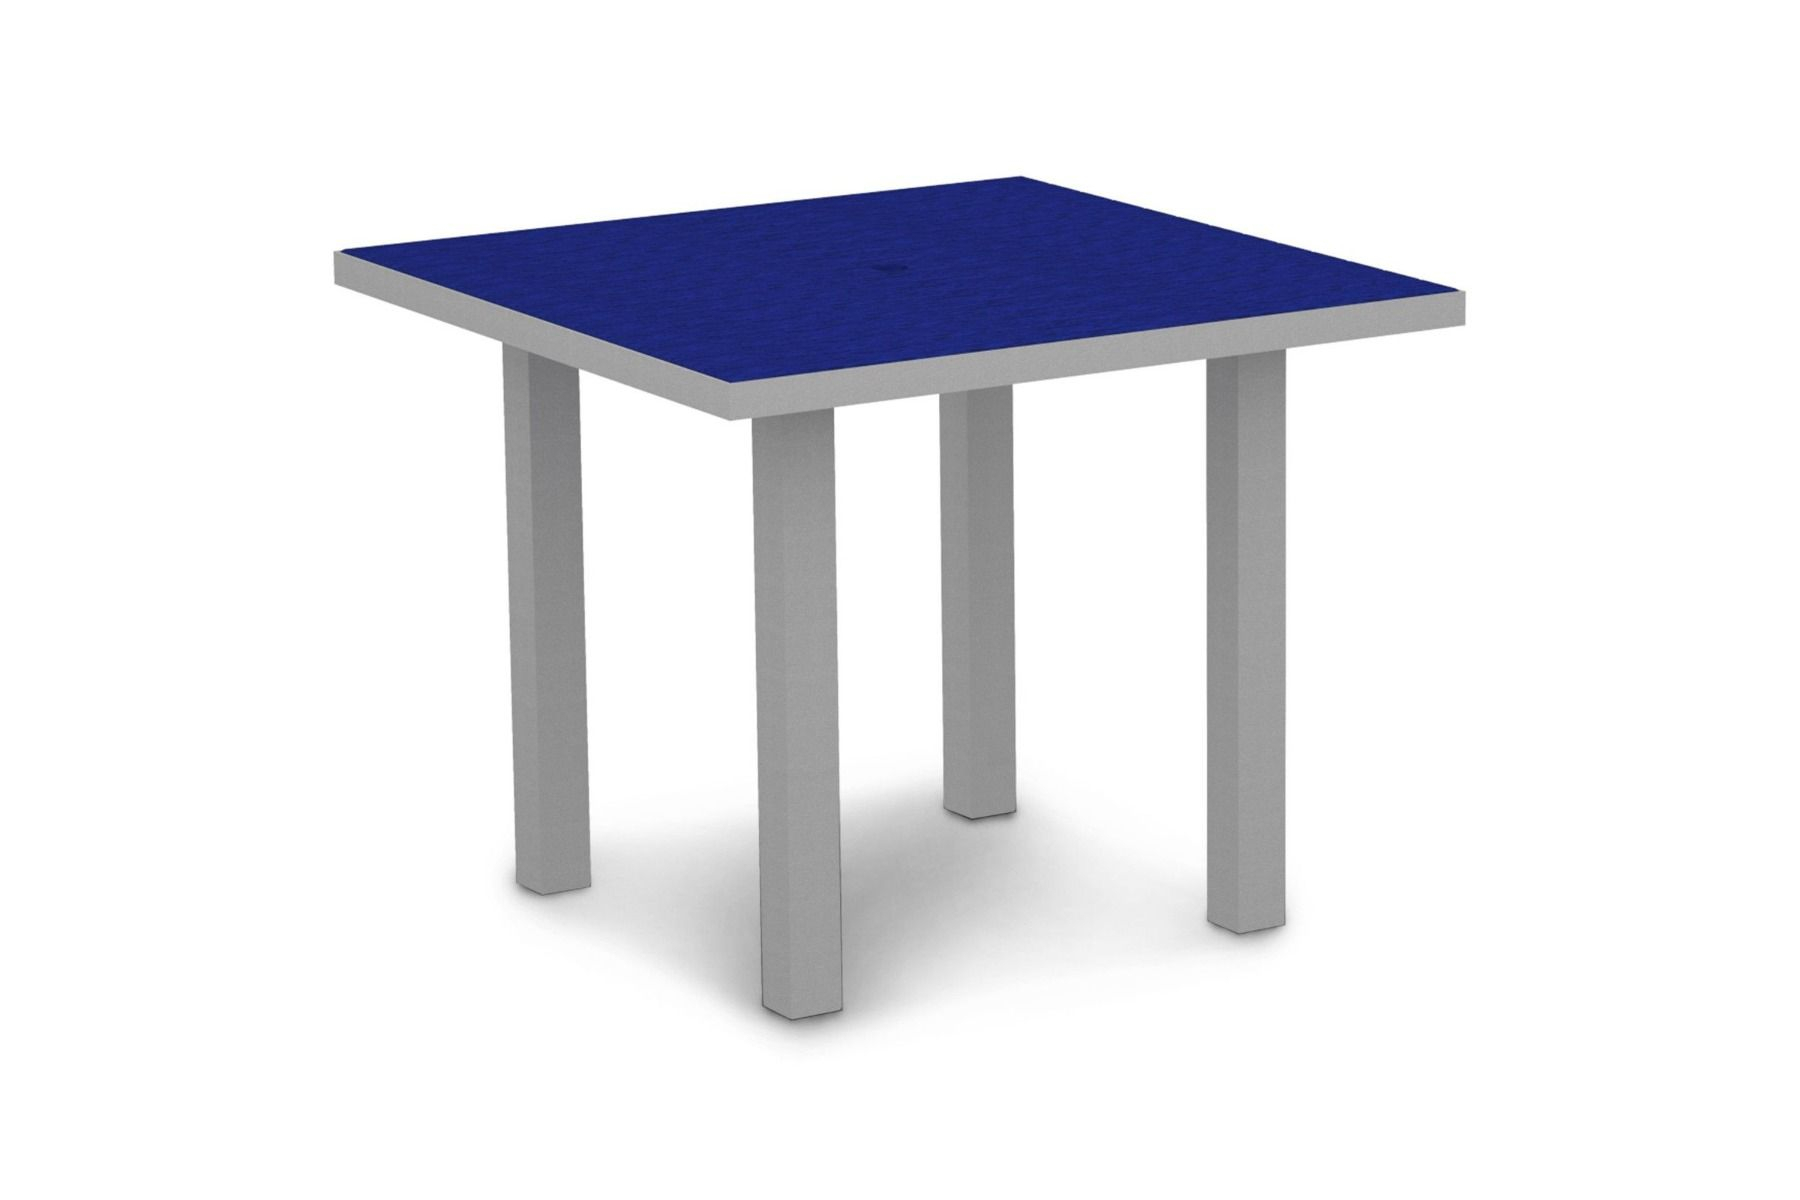 """Euro 36"""" Square Dining Table At36 Intended For Current Pevensey 36'' Dining Tables (View 13 of 15)"""